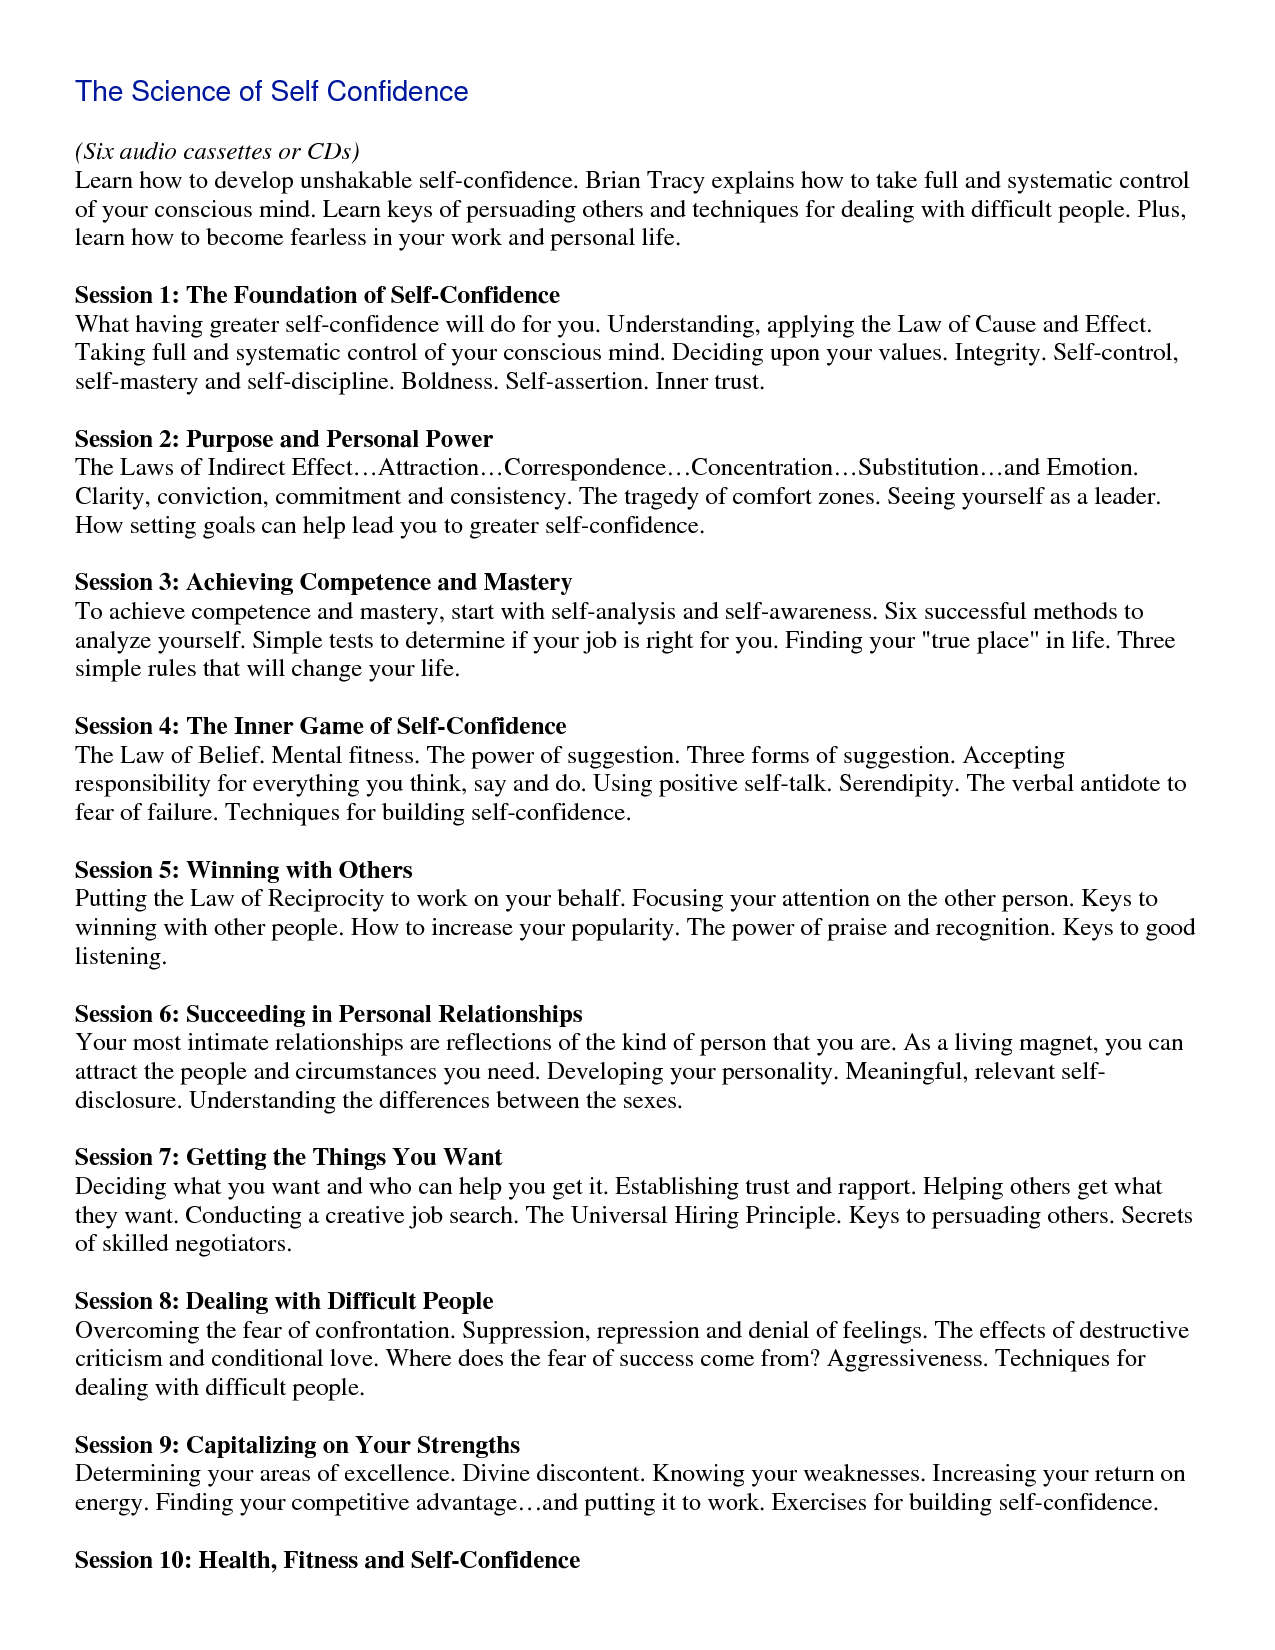 Worksheets Brian Tracy Goals Worksheet 5 ebook brian tracy science of self confidence read again confidence